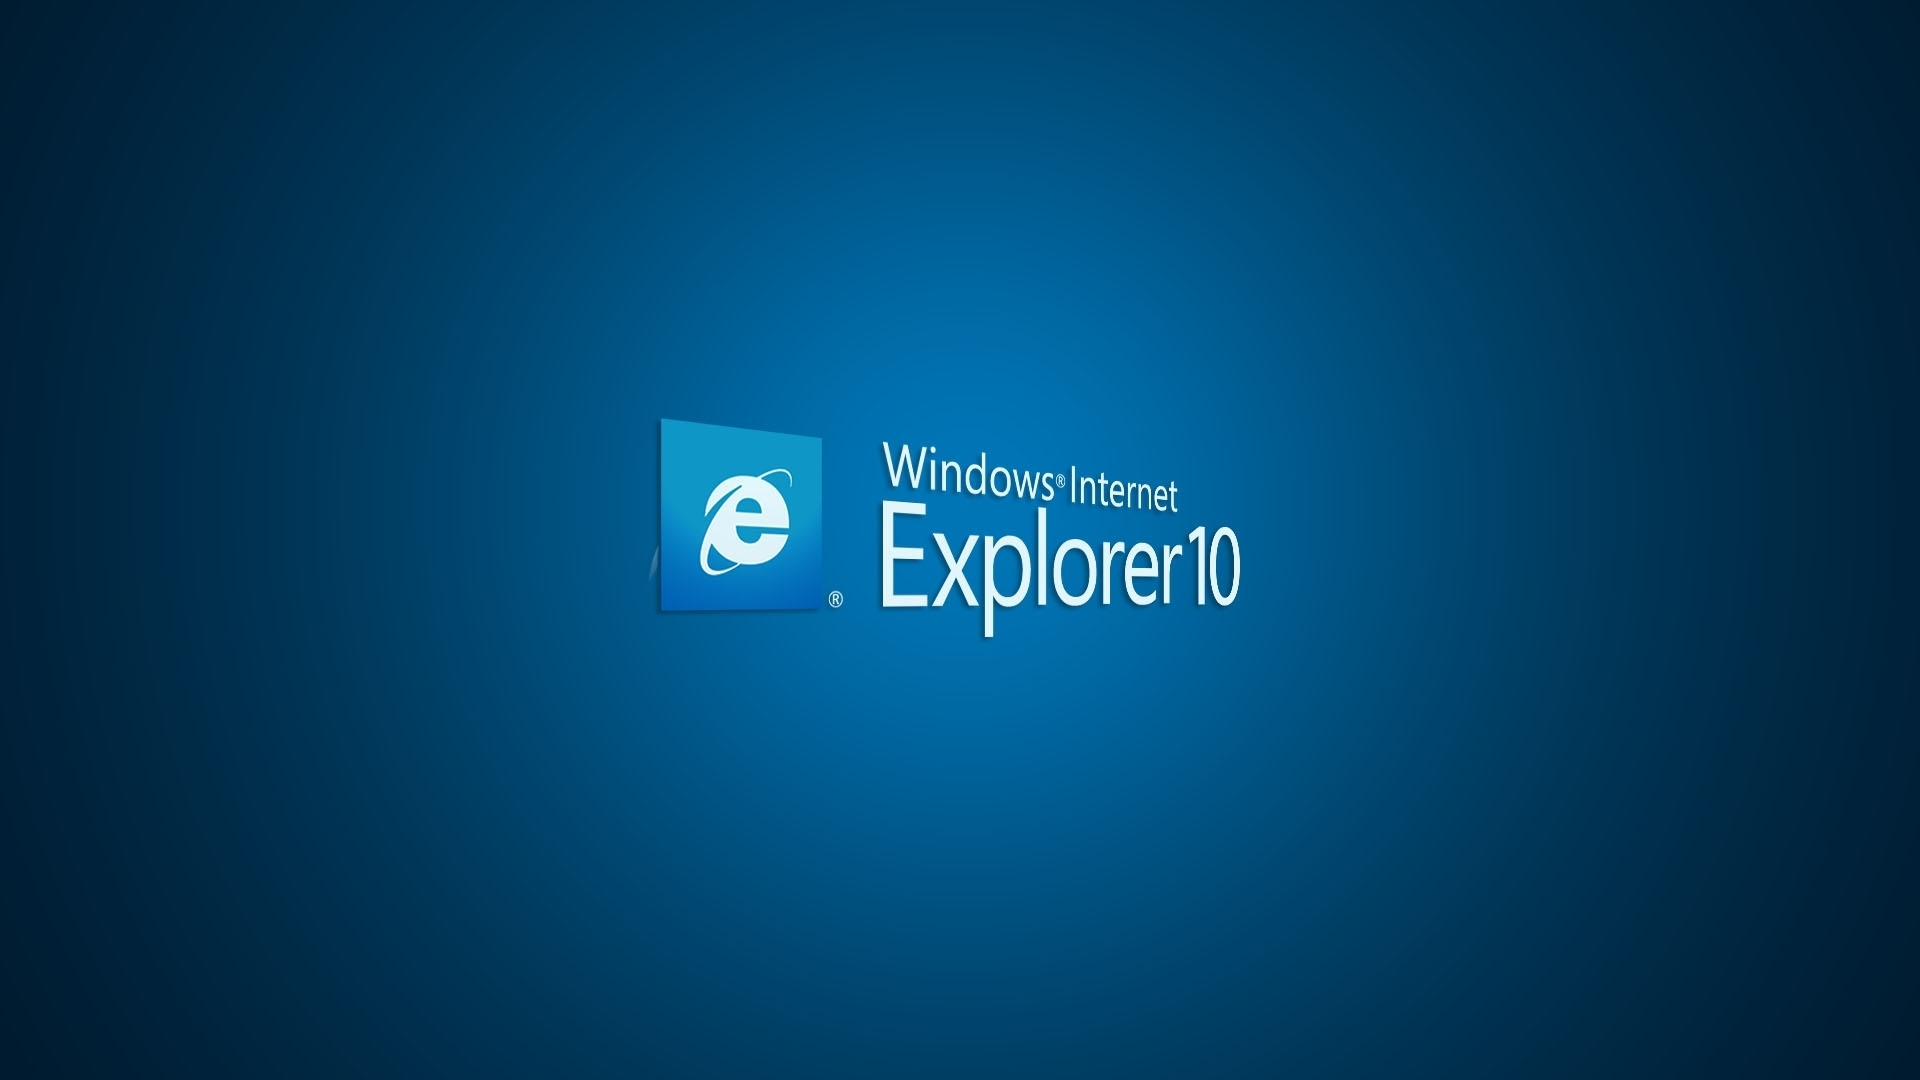 microsoft windows internet explorer 10 high definition